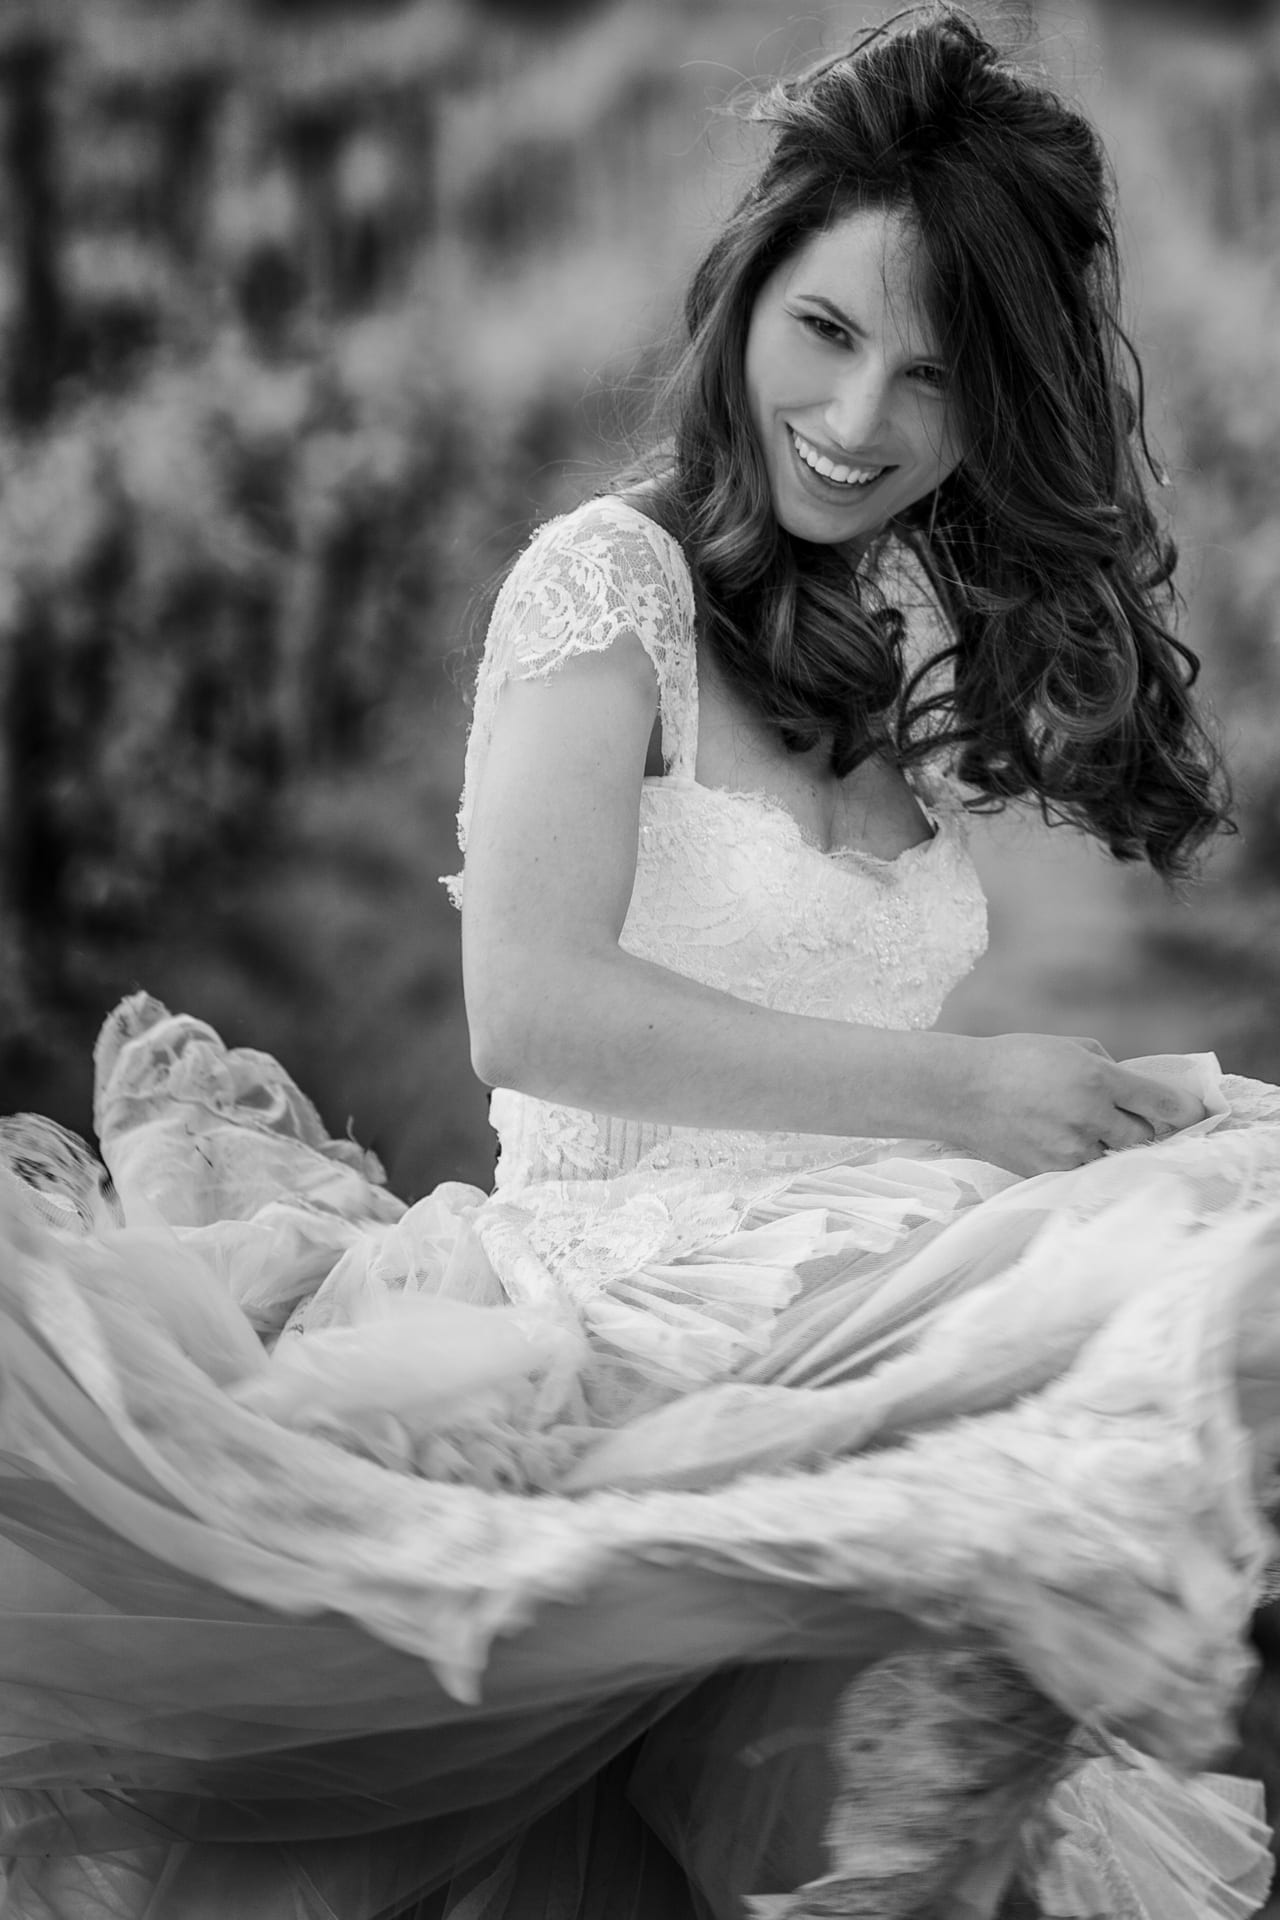 https://s3-eu-central-1.amazonaws.com/righiphotography-com/wp-content/uploads/2020/02/02183229/Wedding-Photo-Perfect-Mix-Studio-Fotografico-Righi-RIGHI-90.jpg